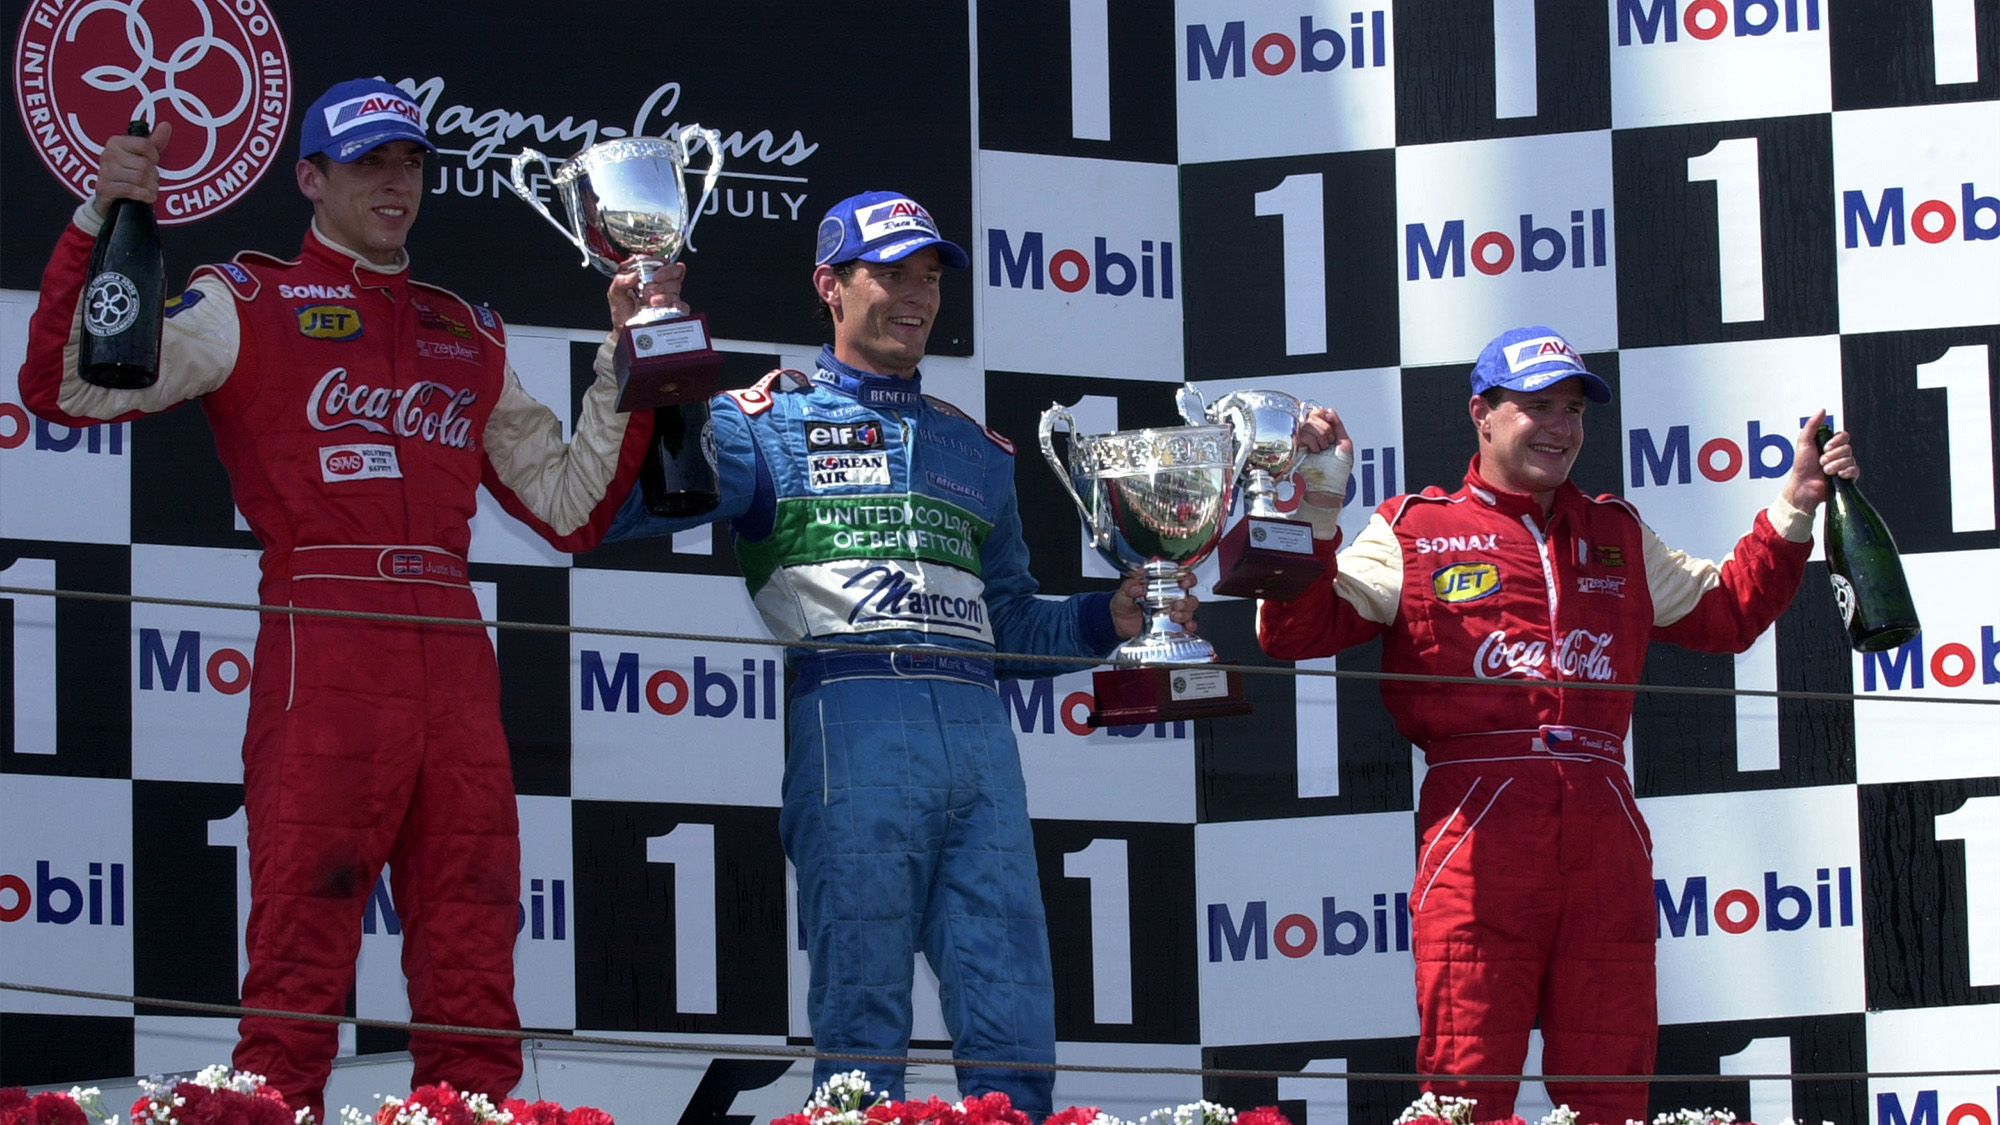 Justin Wilson Mark Webber and Tomas Enge on the podium at Magny Cours after the the 2001 F3000 race